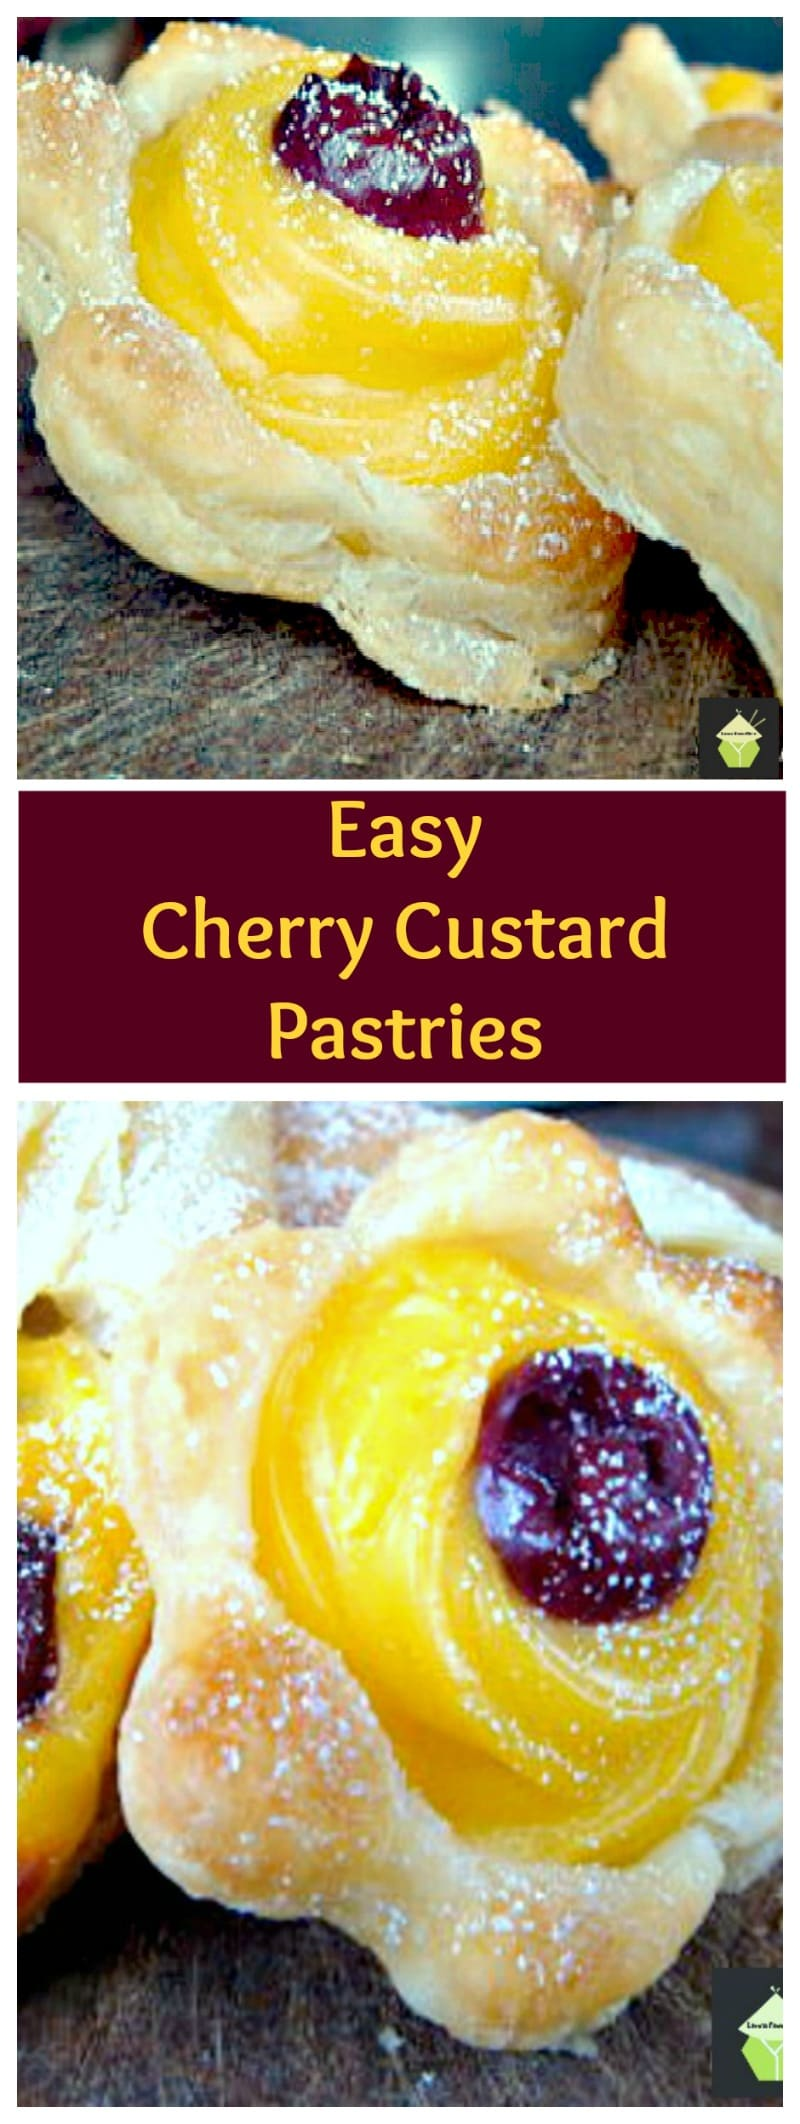 Easy Cherry Custard Pastries are perfect for serving at a tea party, or just to have for yourself! Easy to make and fun for kids to help too!